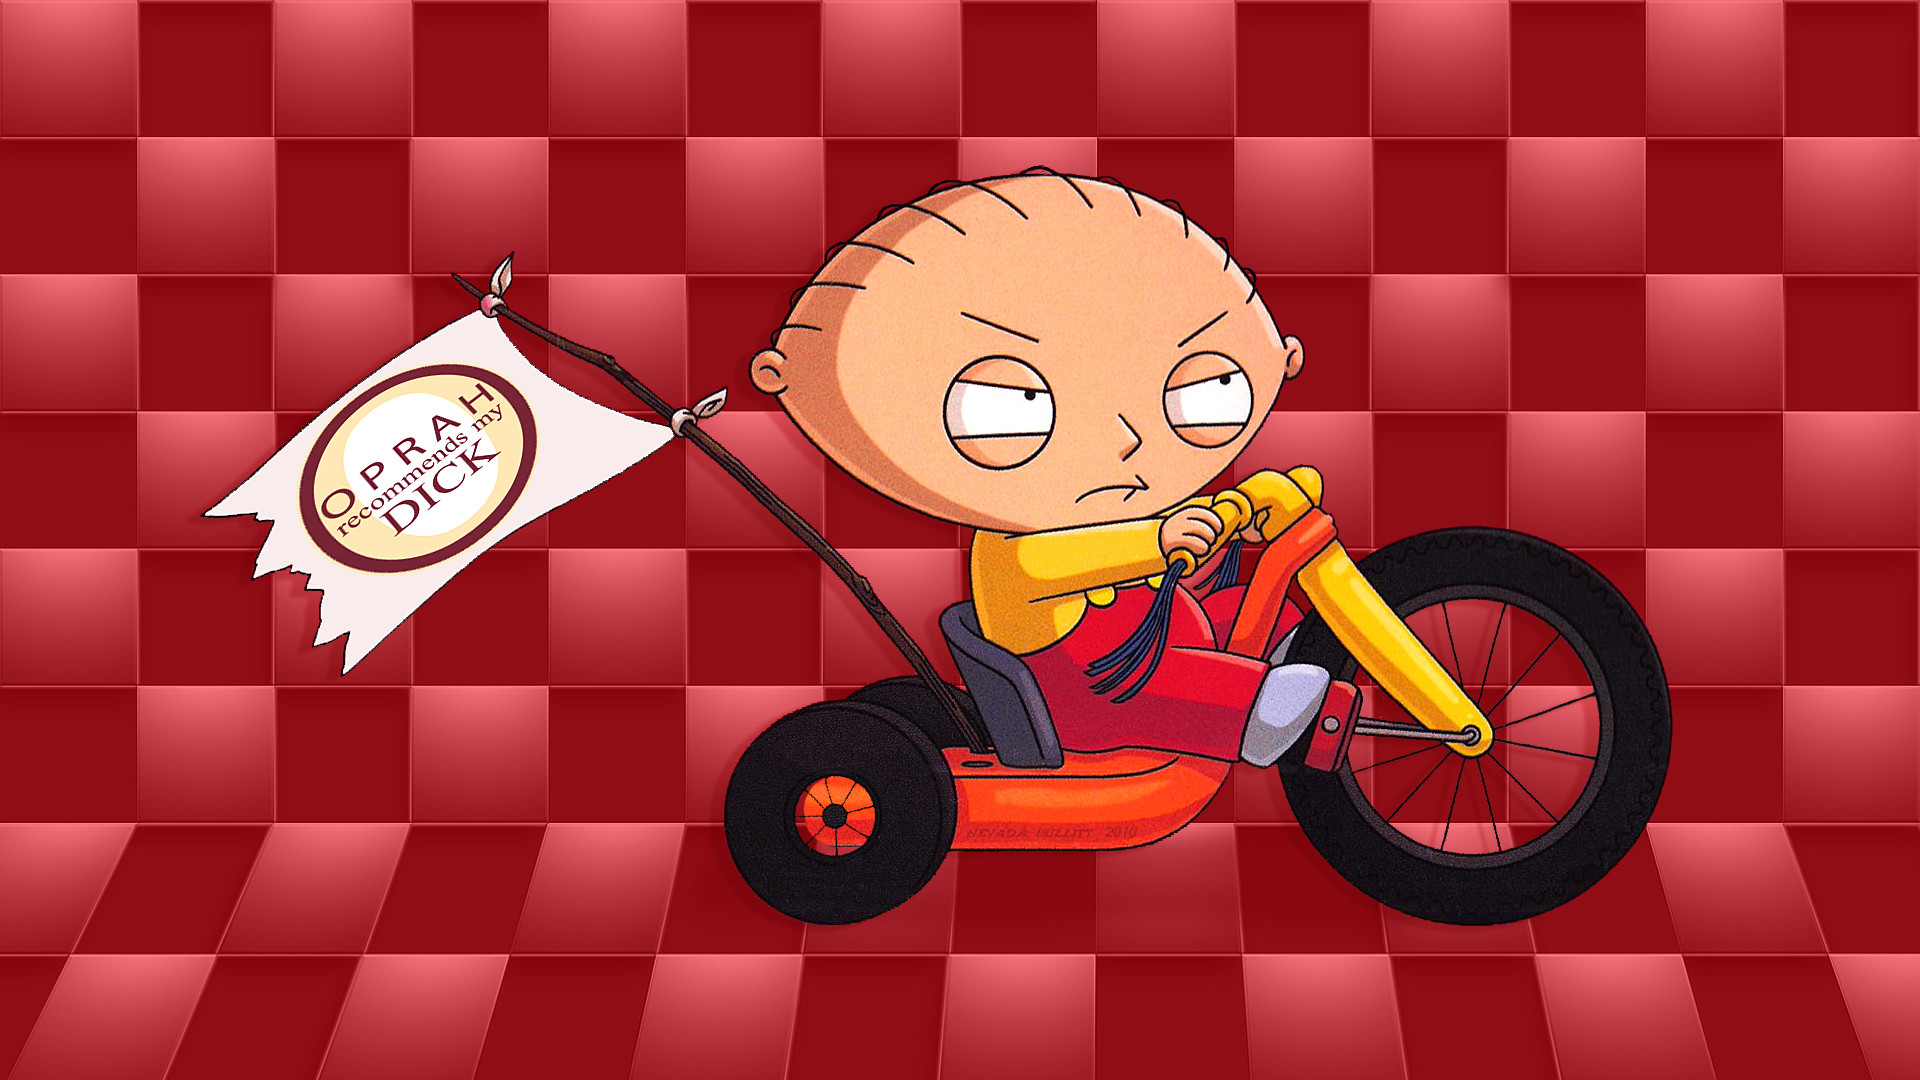 1920x1080 Free stewie and oprah wallpaper background